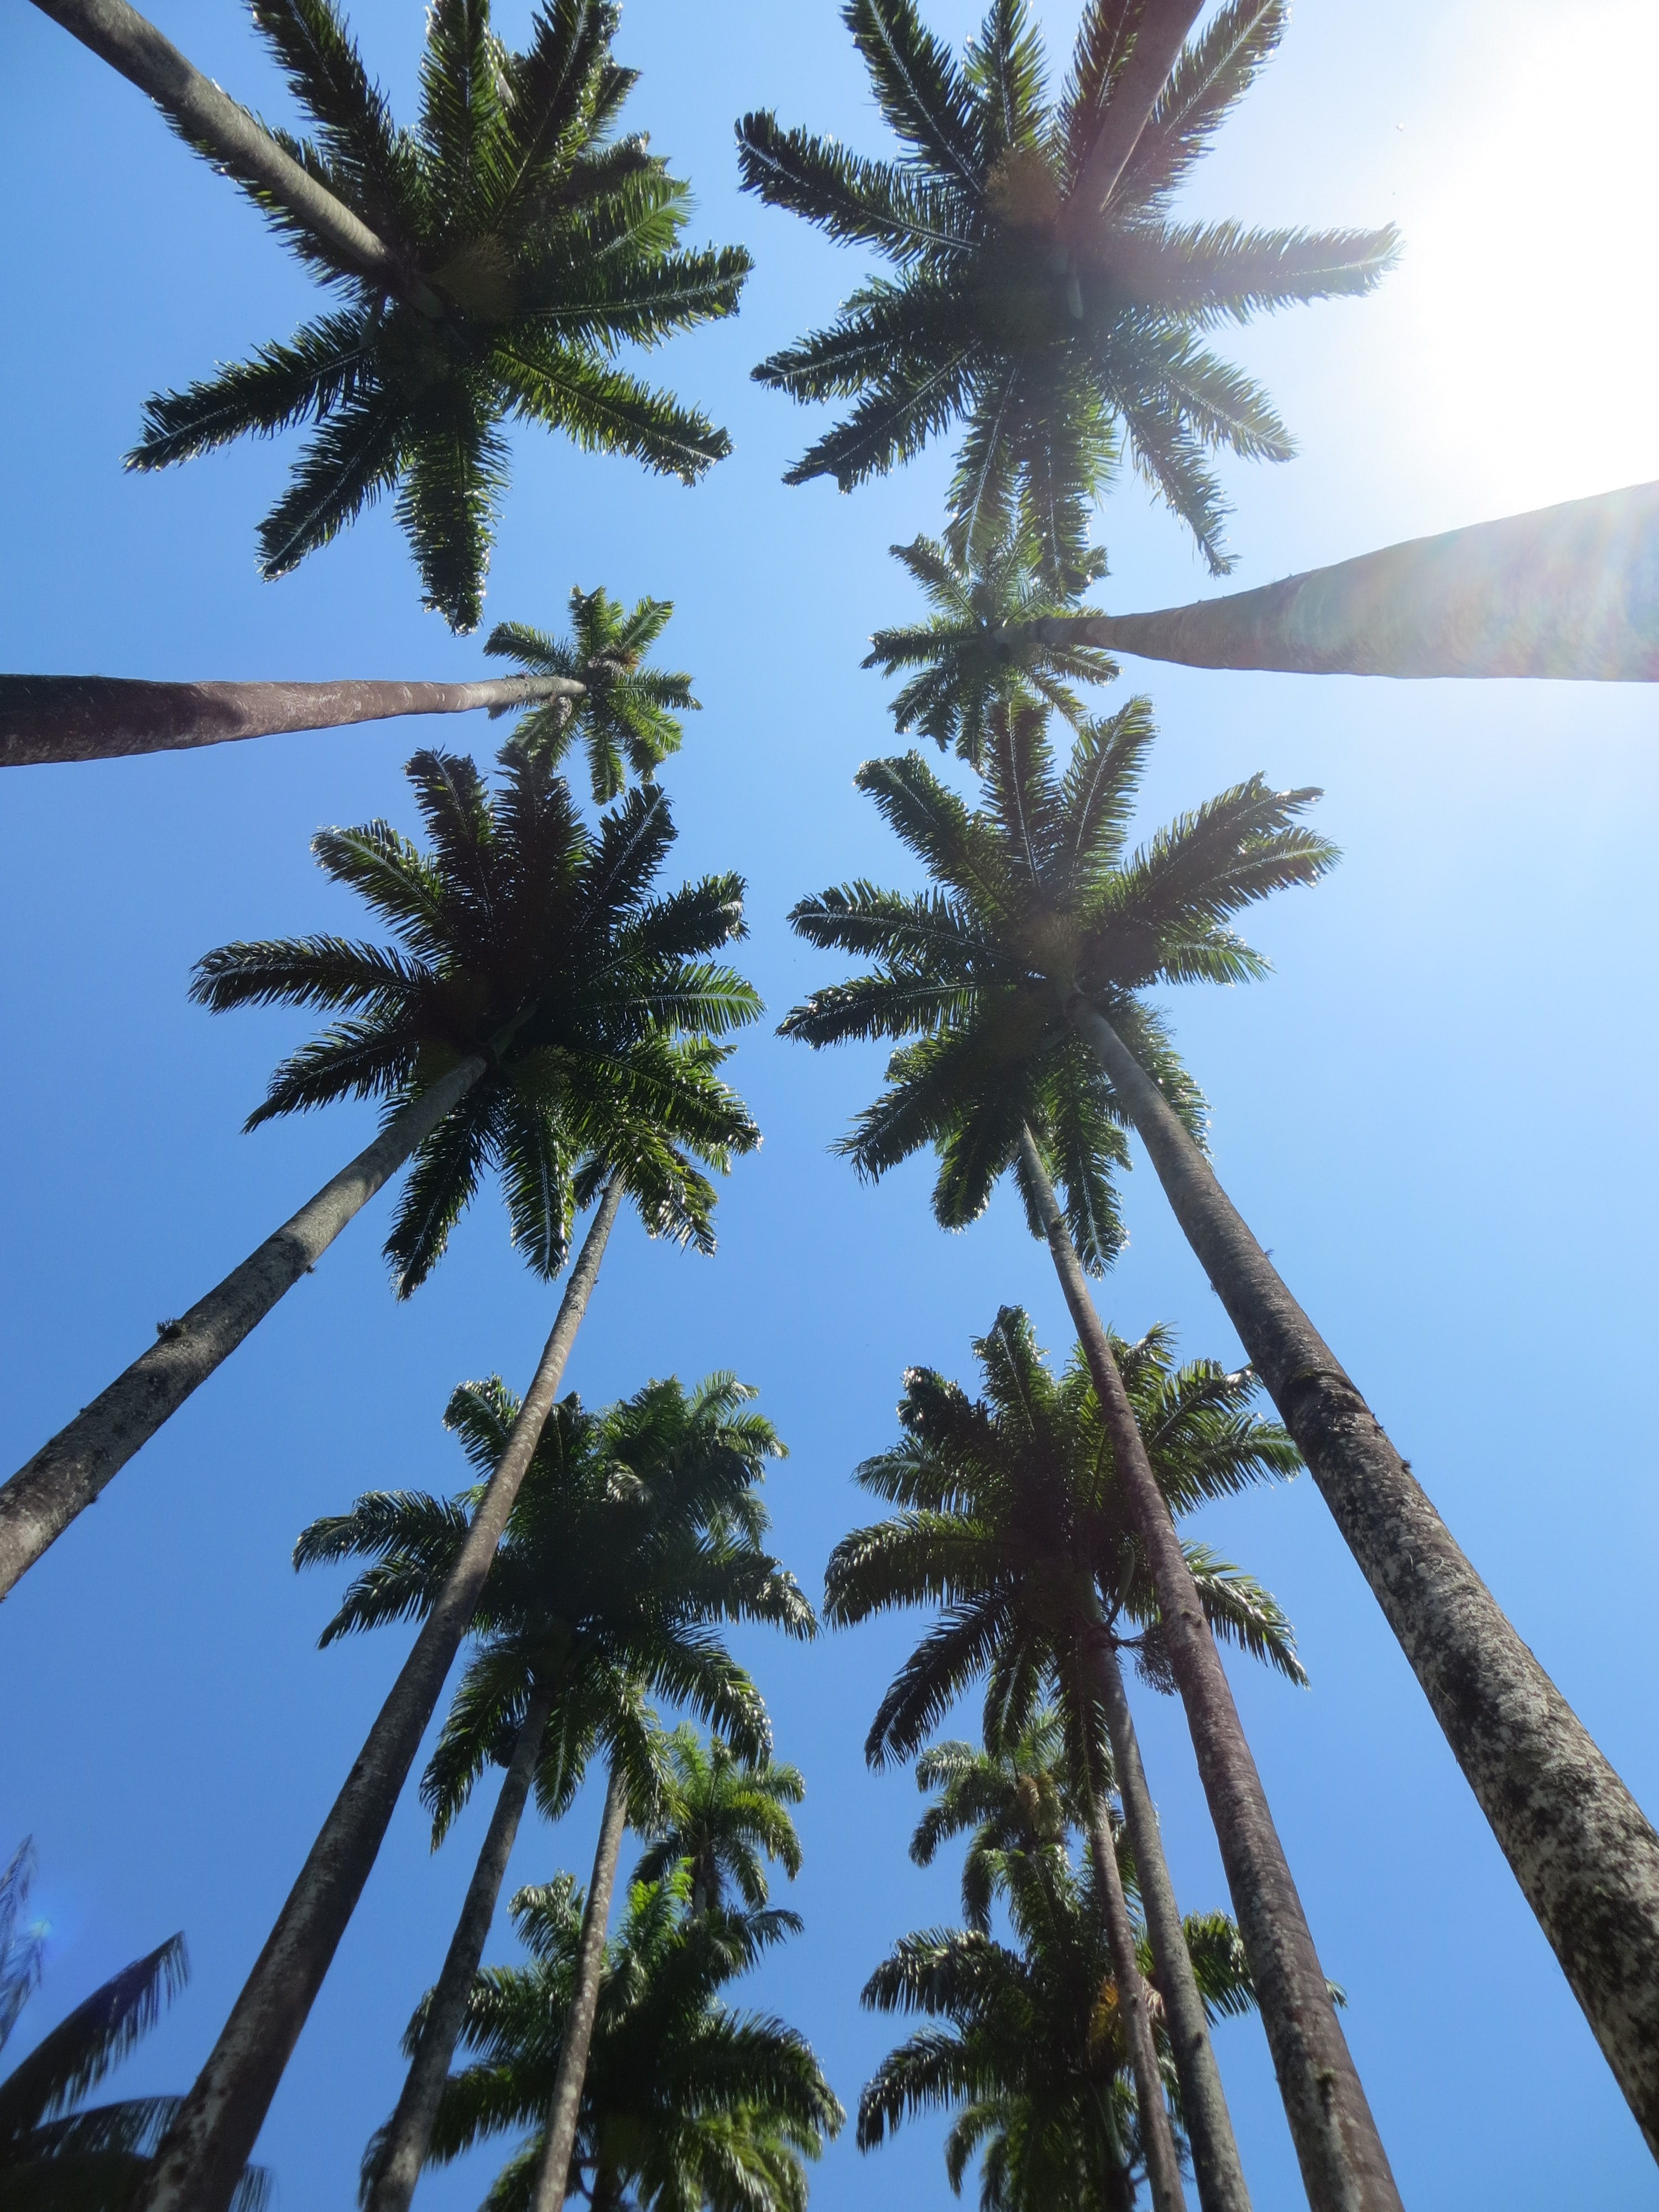 Looking straight up at a dozen palm trees against a sunny blue sky